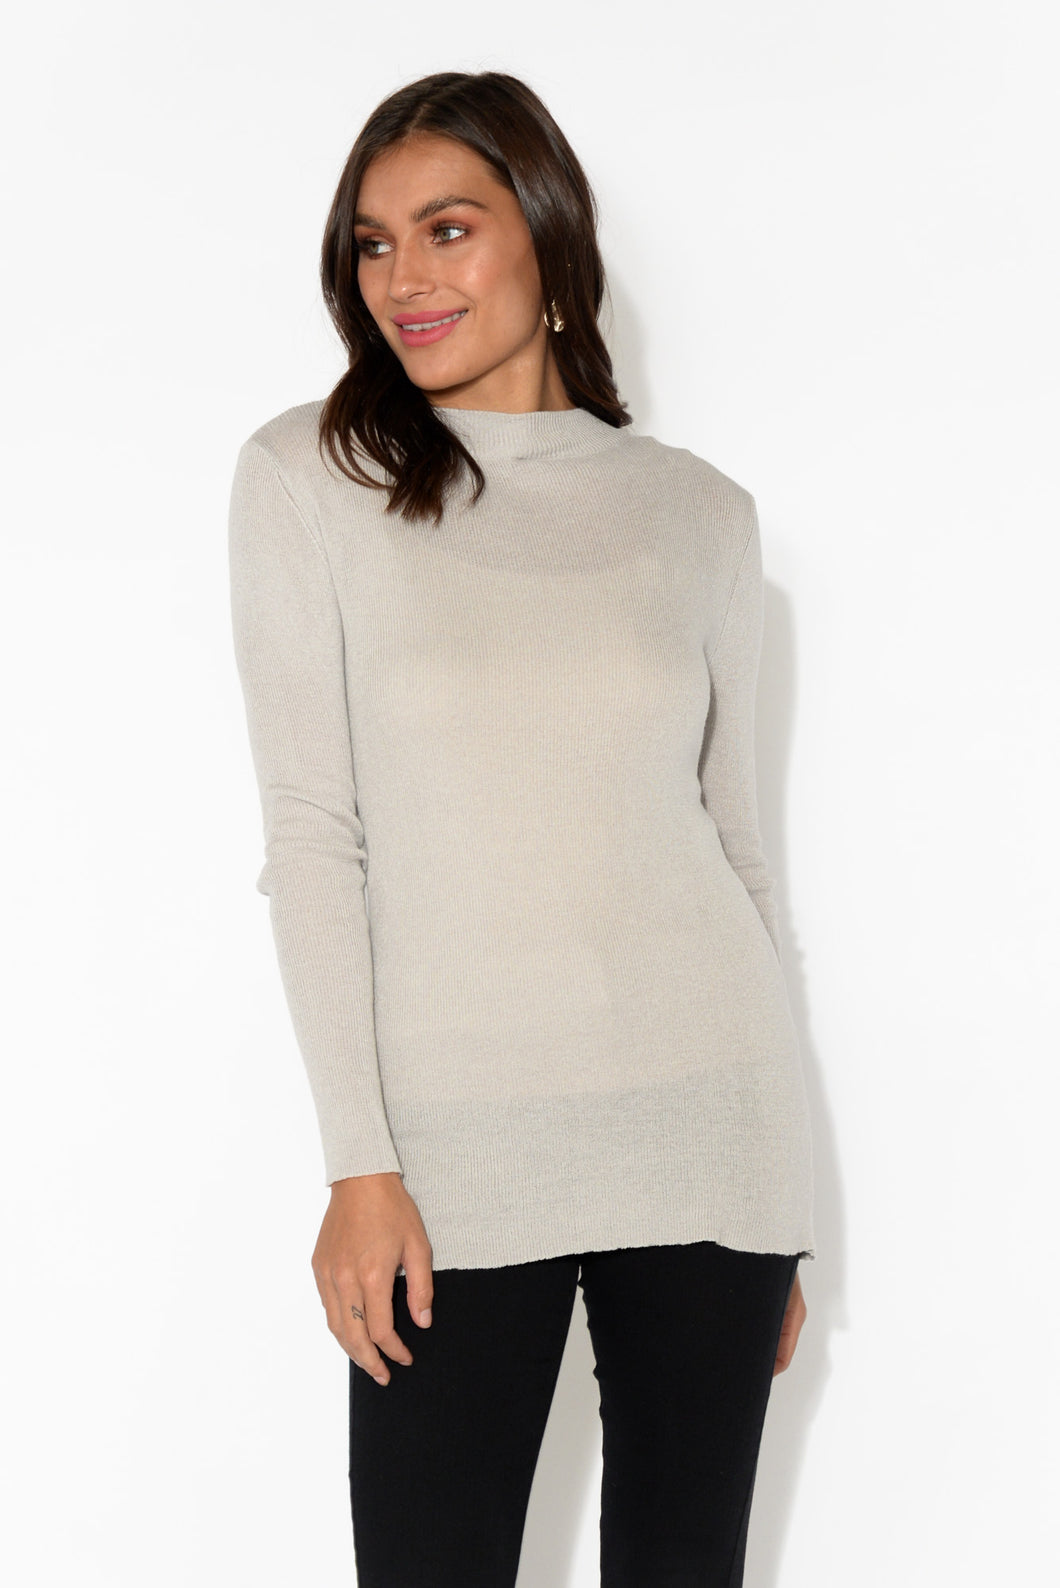 Skyline Taupe Knit Sleeved Top